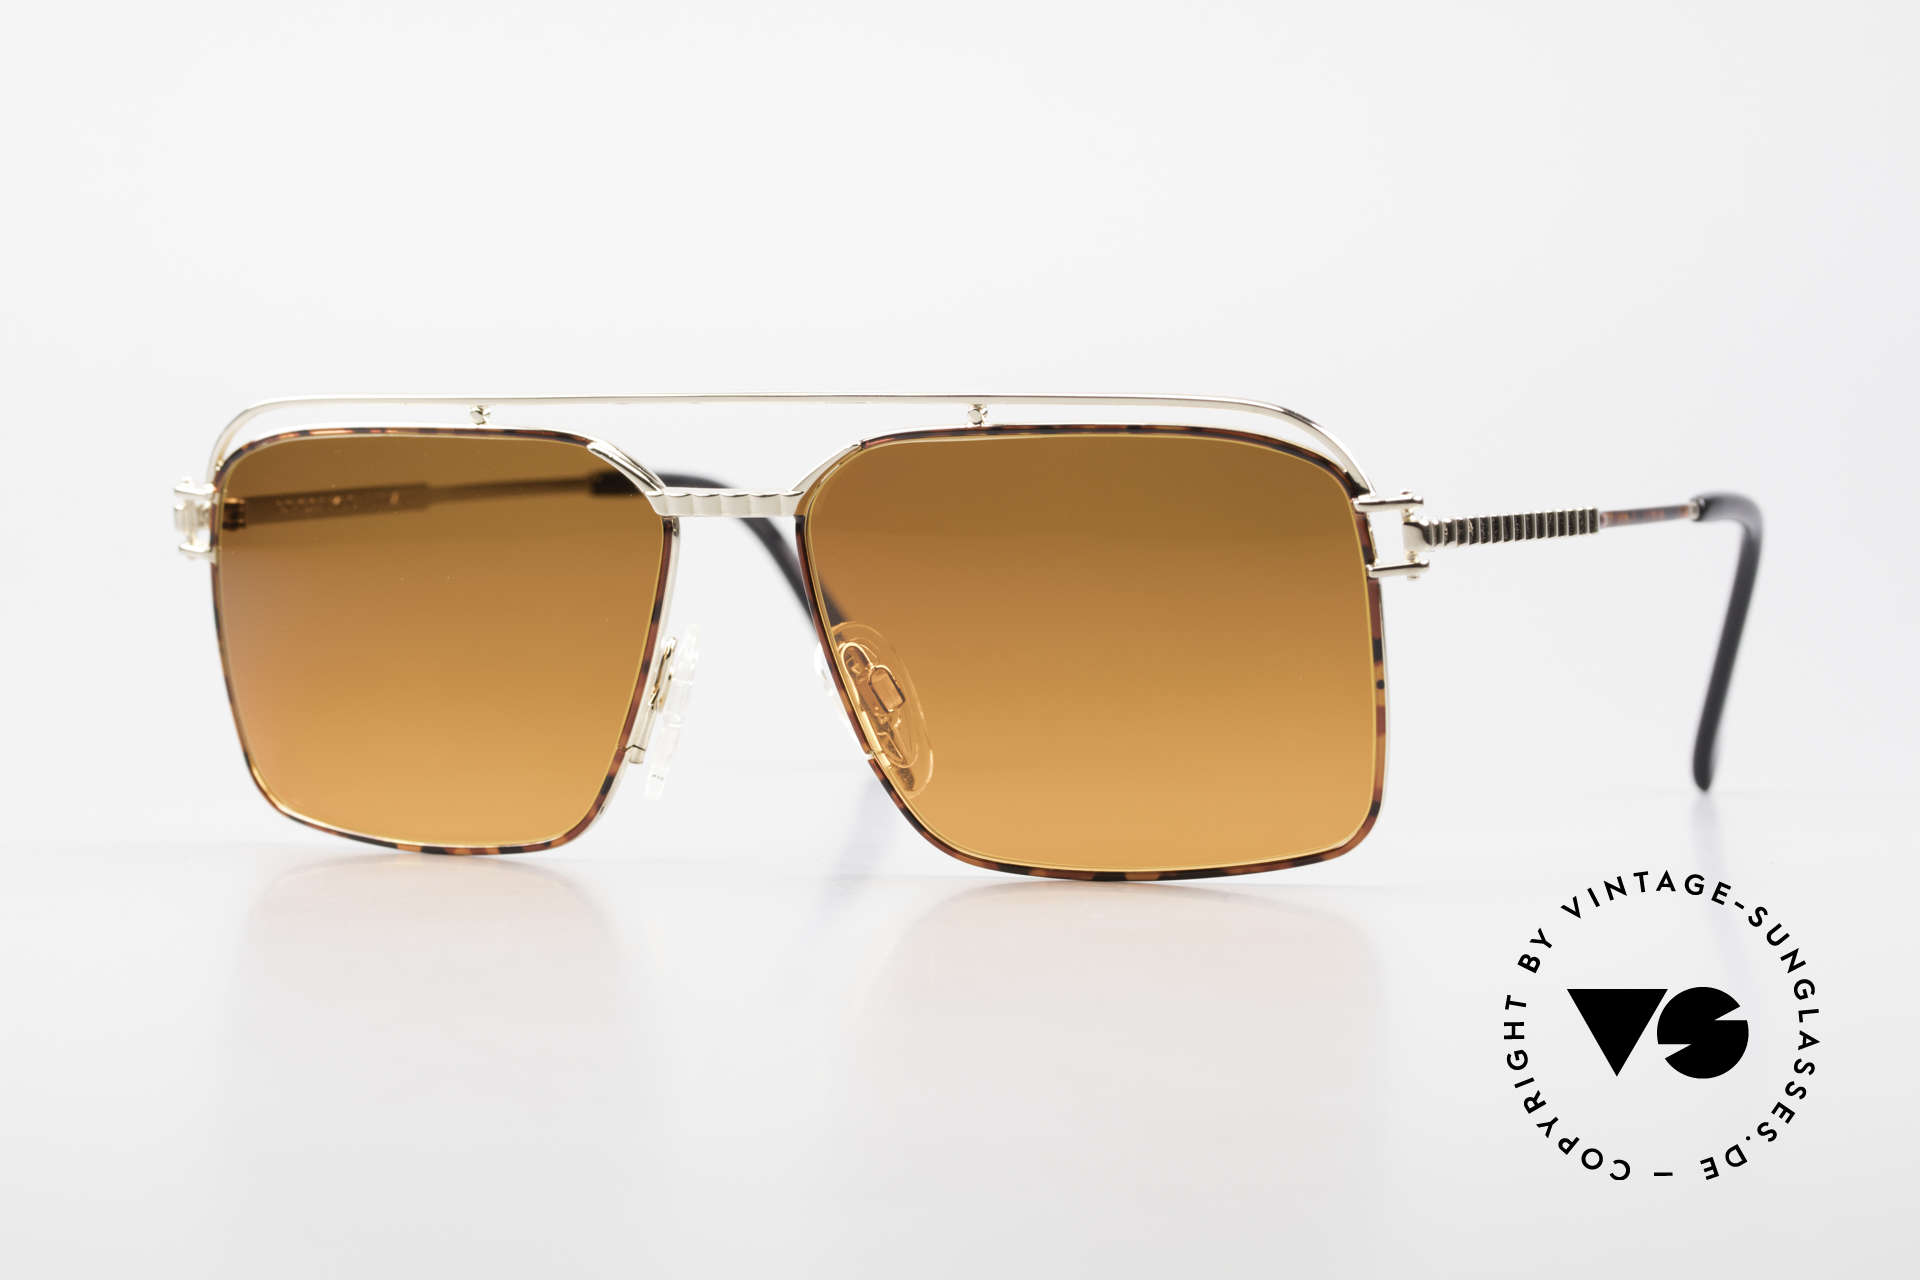 Neostyle Dynasty 424 - L 80's Titanium Men's Shades, 80's Neostyle Dynasty 424, size 58/16 sunglasses, Made for Men